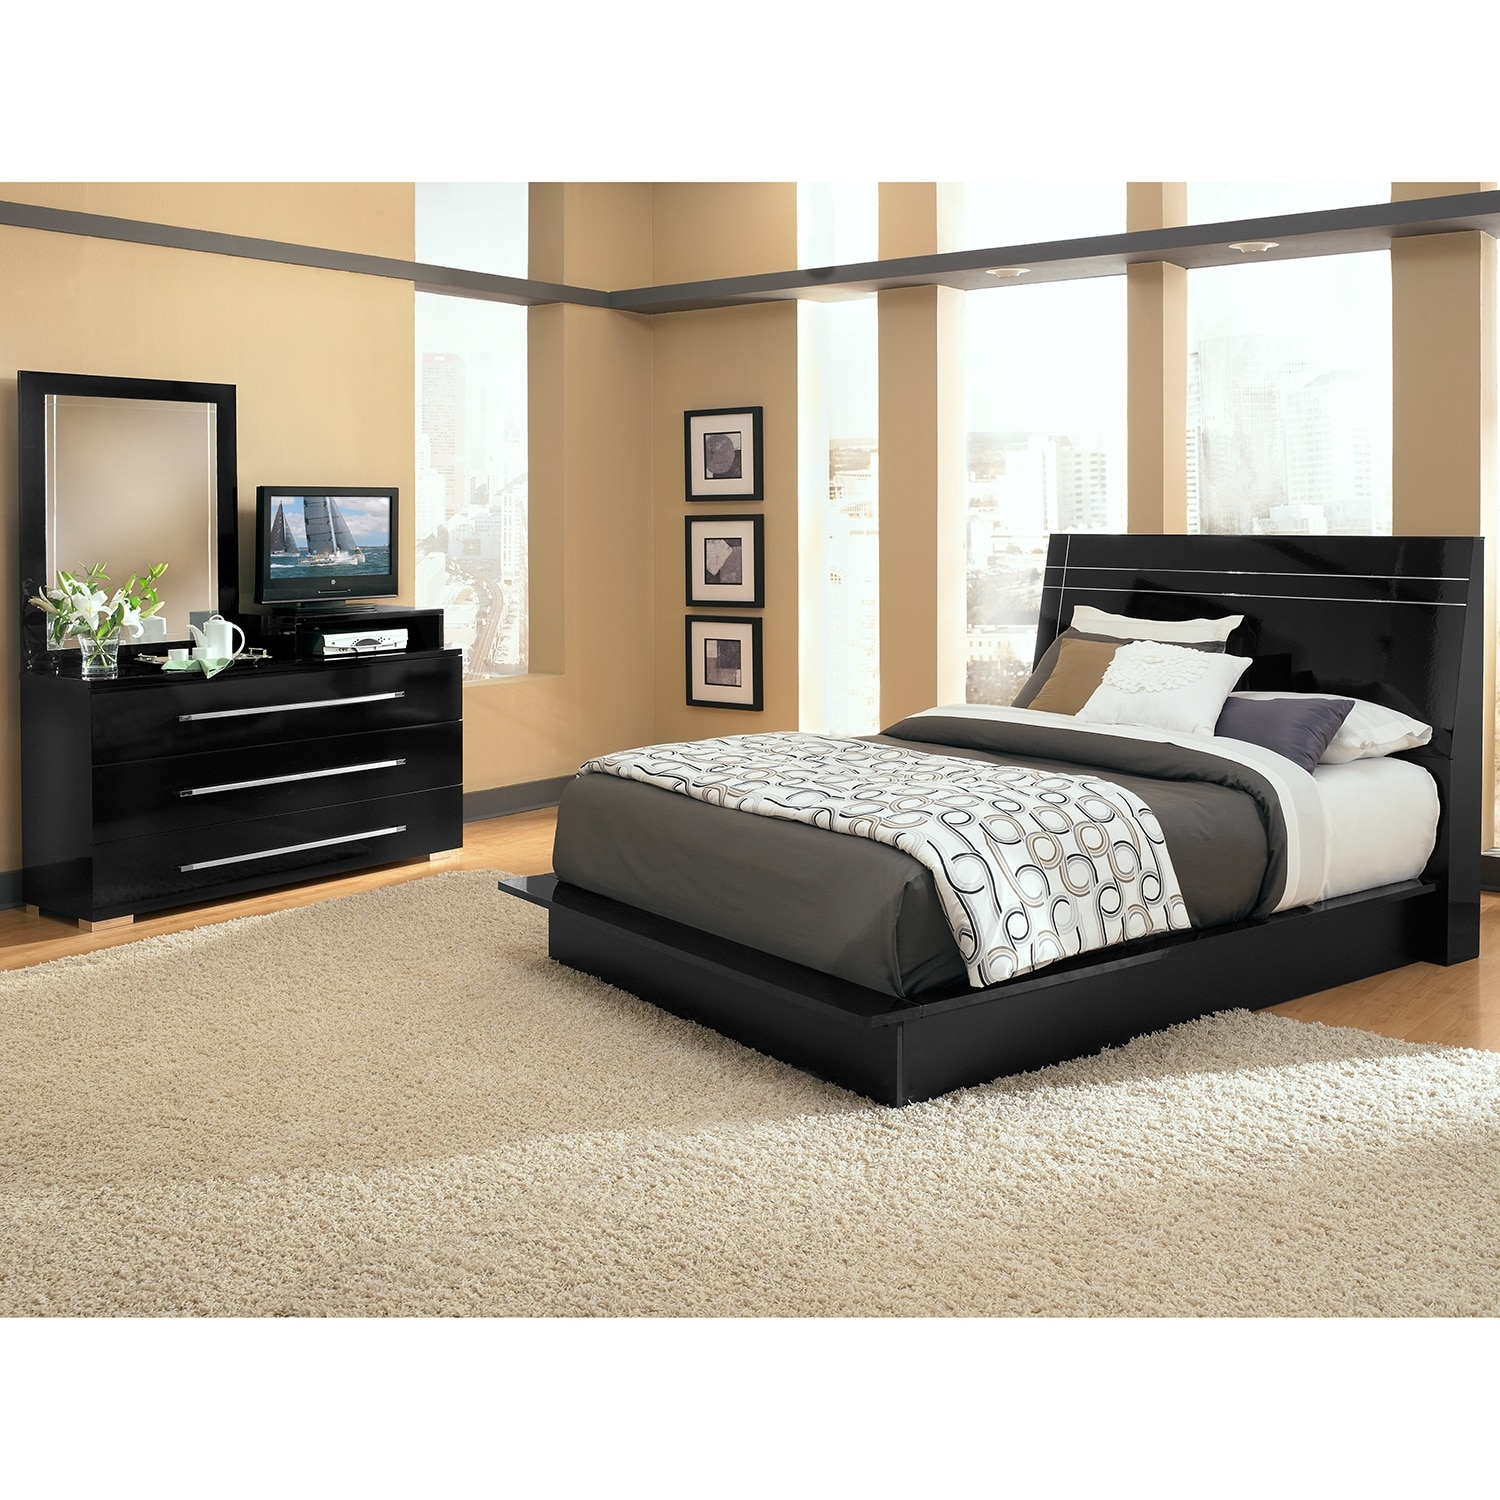 Dimora black ii 5 pc queen bedroom value city furniture - Queen bedroom sets ...